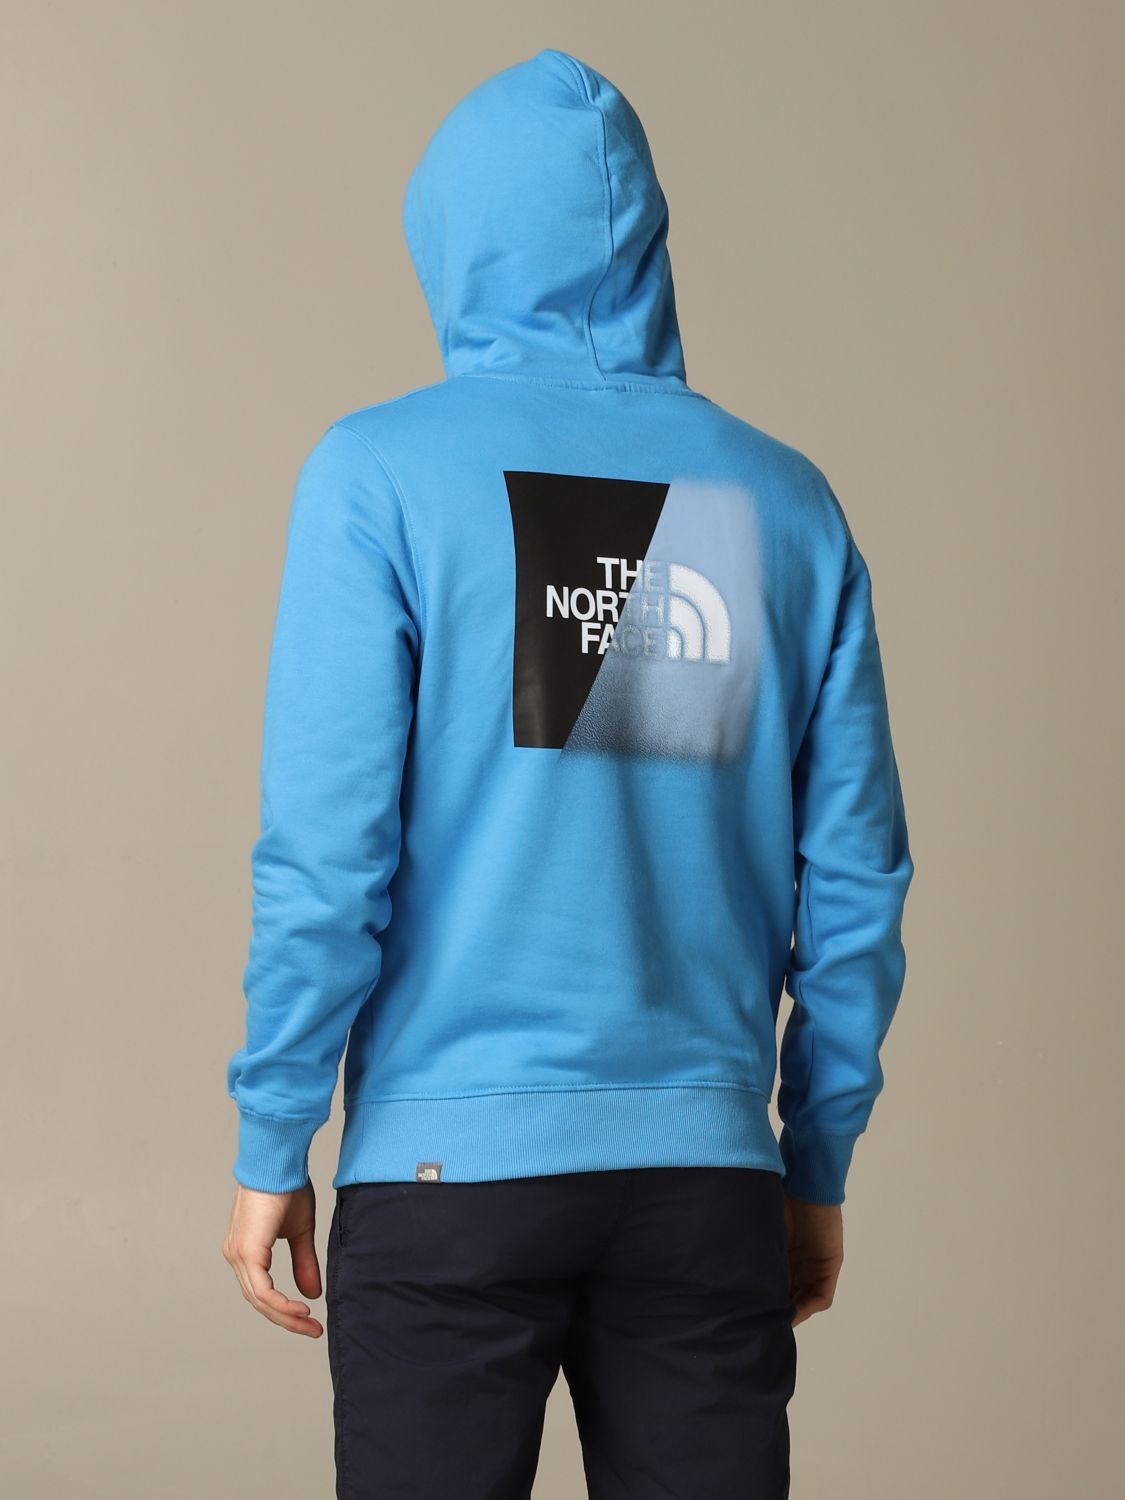 Sweatshirt The North Face: Sweatshirt men The North Face gnawed blue 2